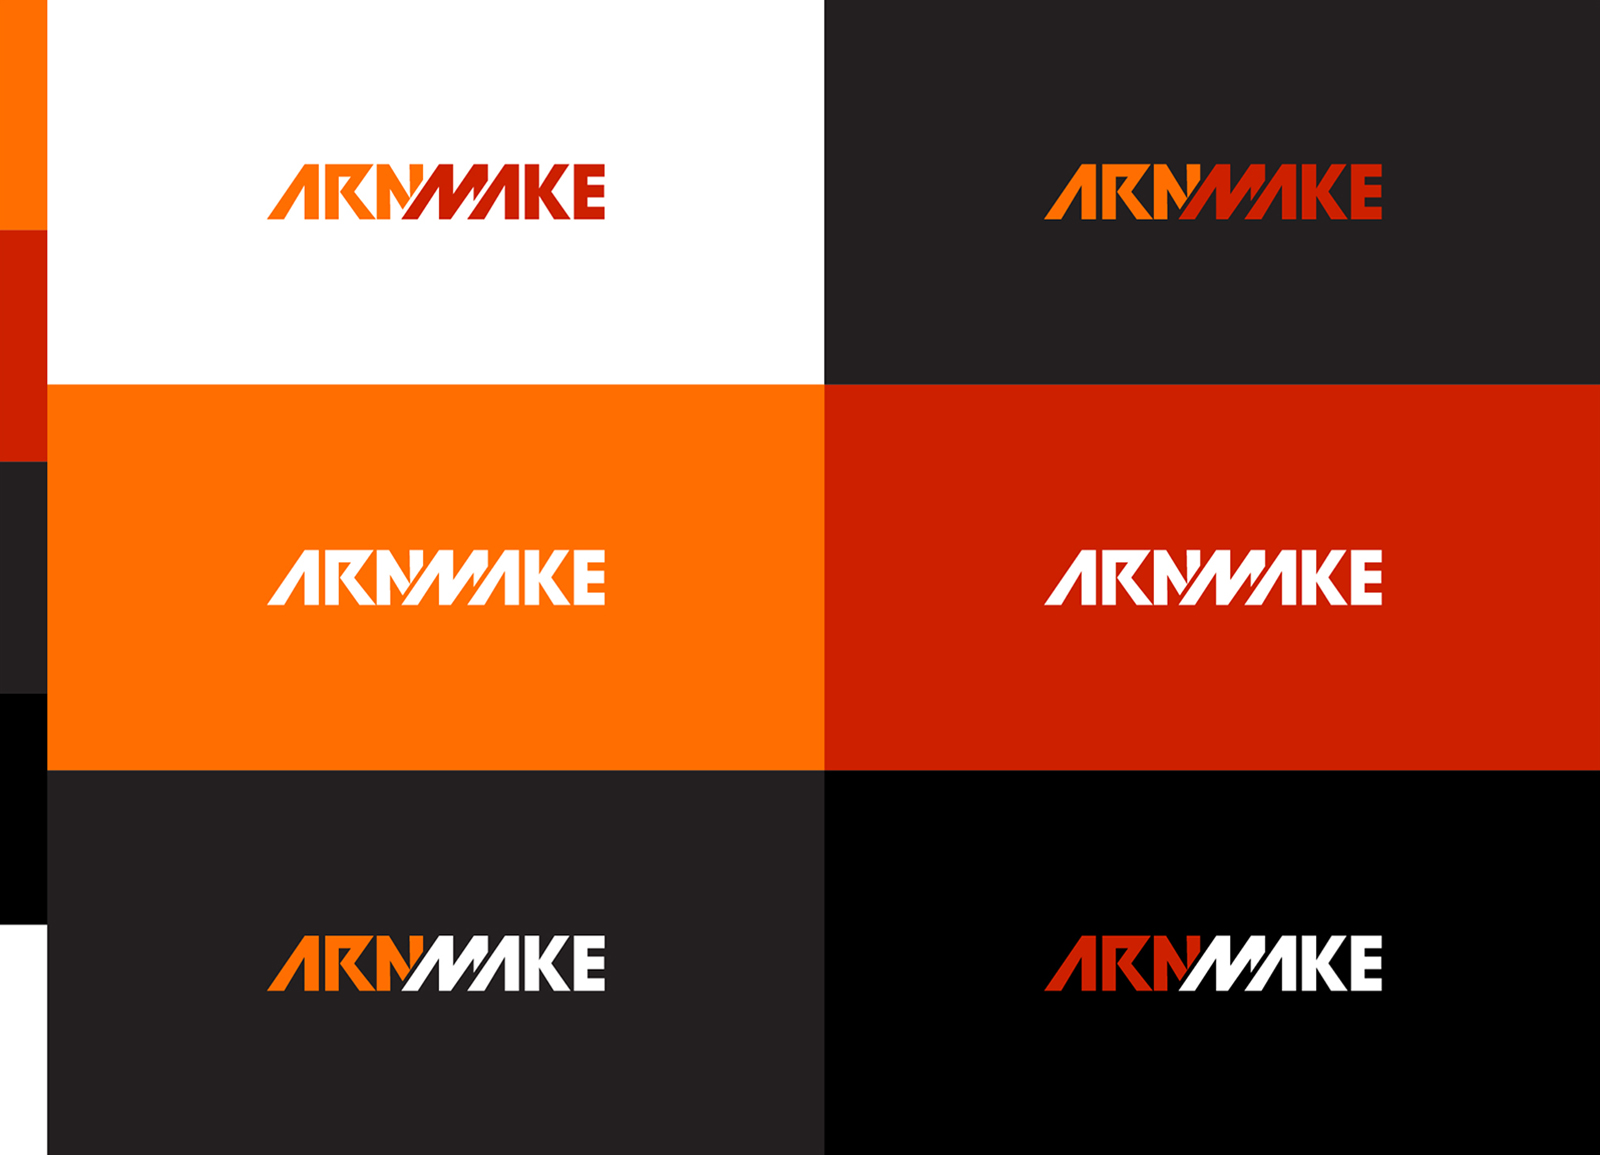 Arnmake Colors v2-01.jpg